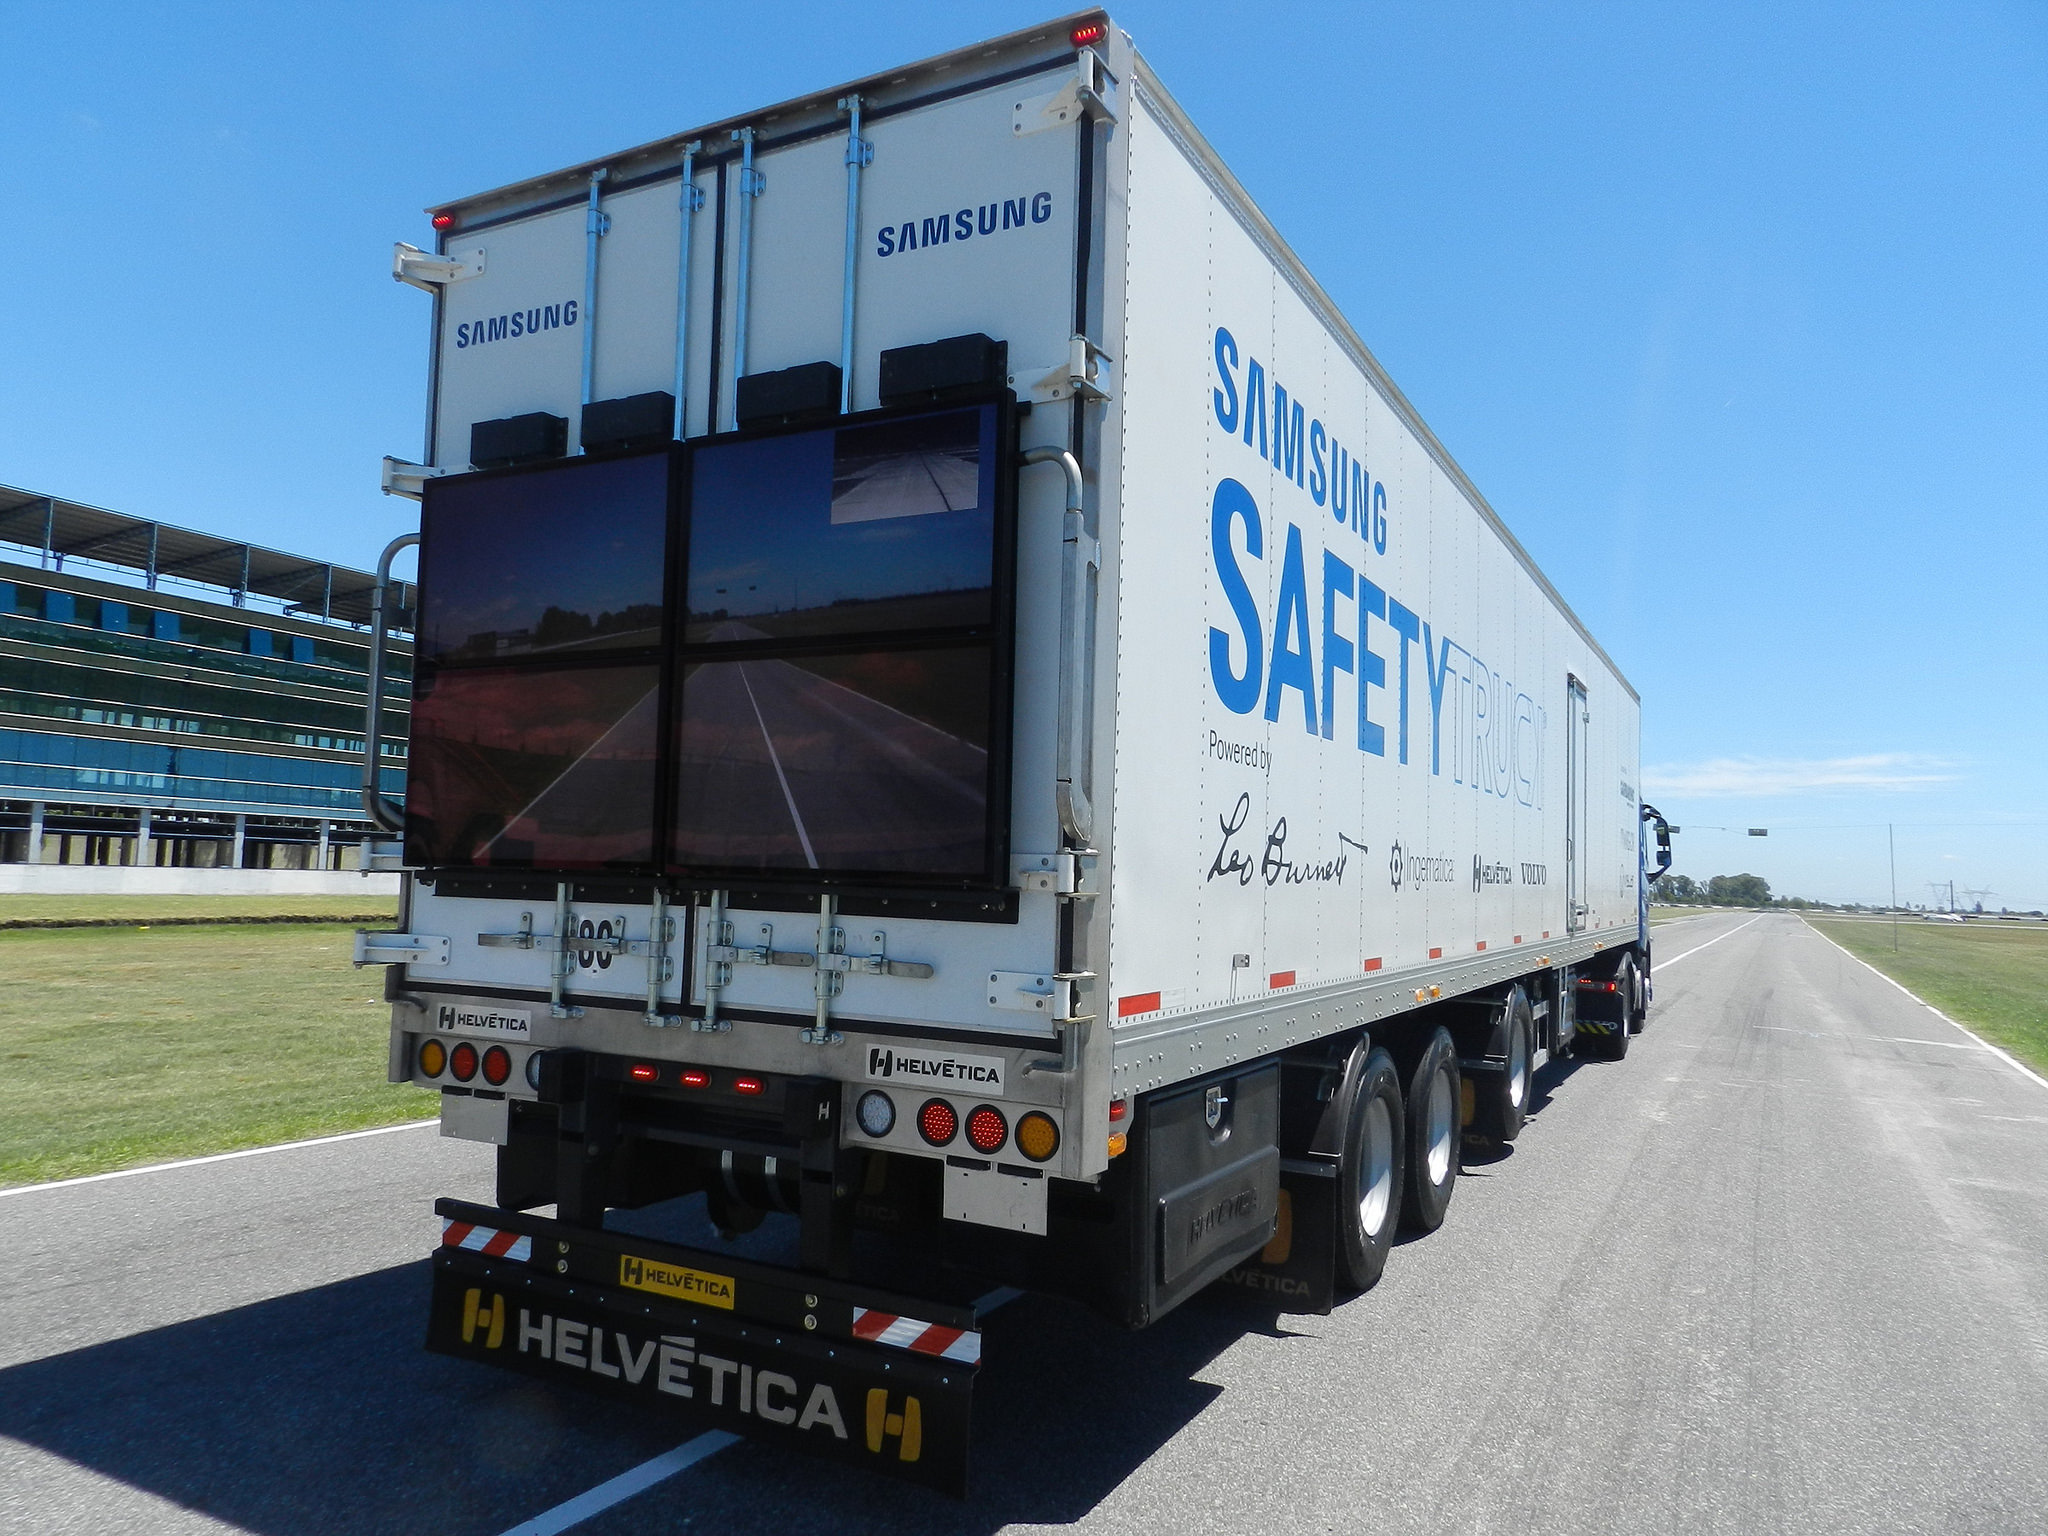 Samsungs Safety Truck Concept Starts Testing In Argentina - Samsung safety truck shows the road ahead so cars can safely pass